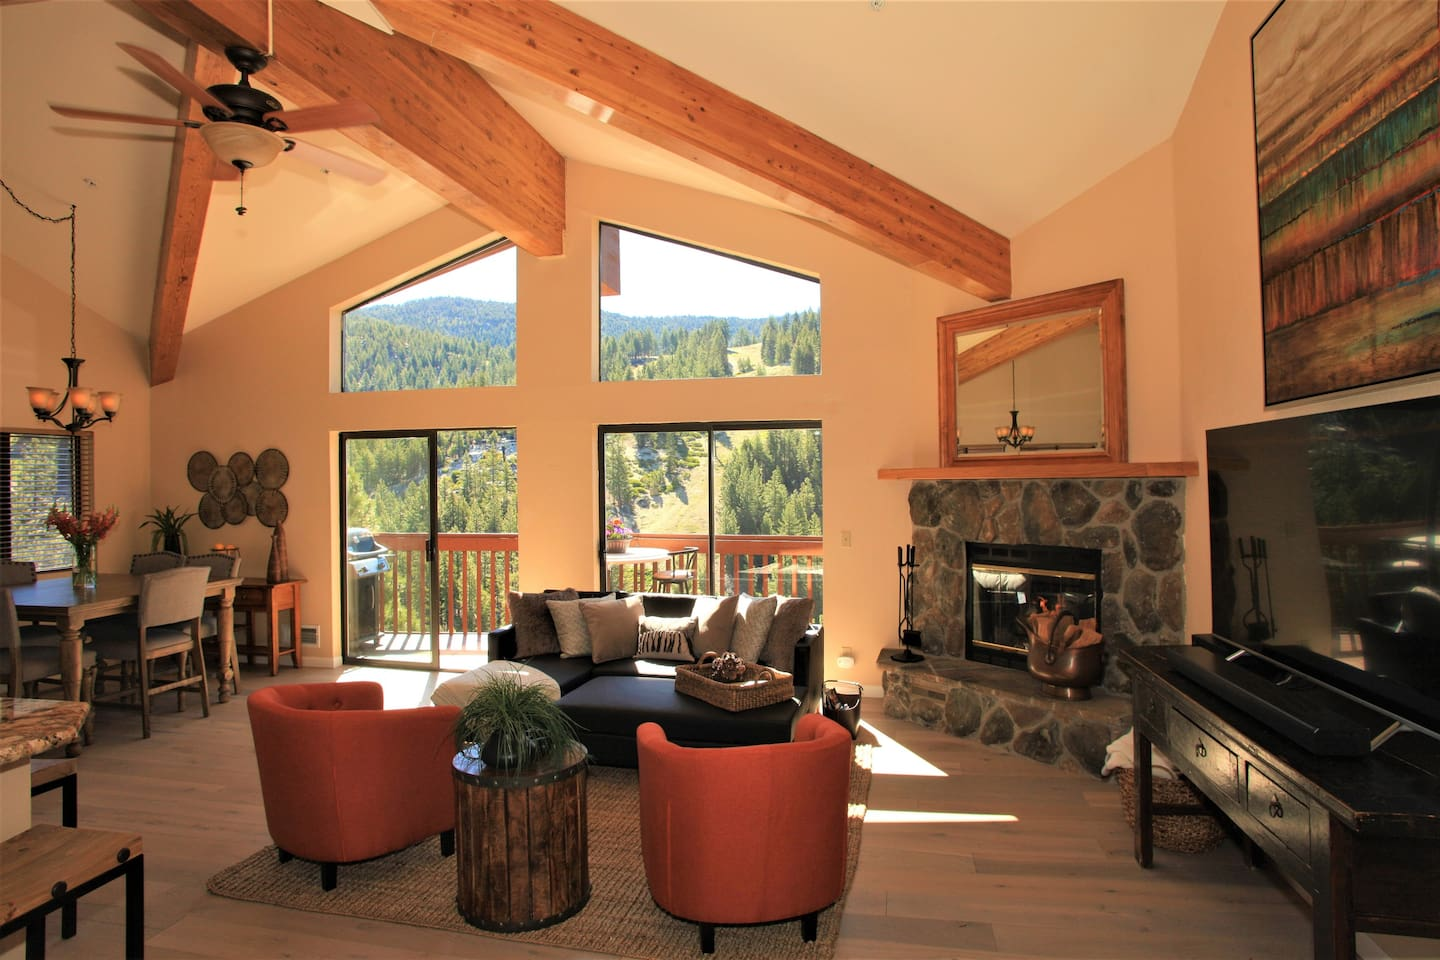 This mountain sanctuary overlooking Diamond Peak is the perfect place to gather, relax, entertain and take in the sweeping views of the mountains and Lake Tahoe beyond.  Completely updated and modern this 2 bedroom/2 bath condominium is comfortable, spacious and stylish.